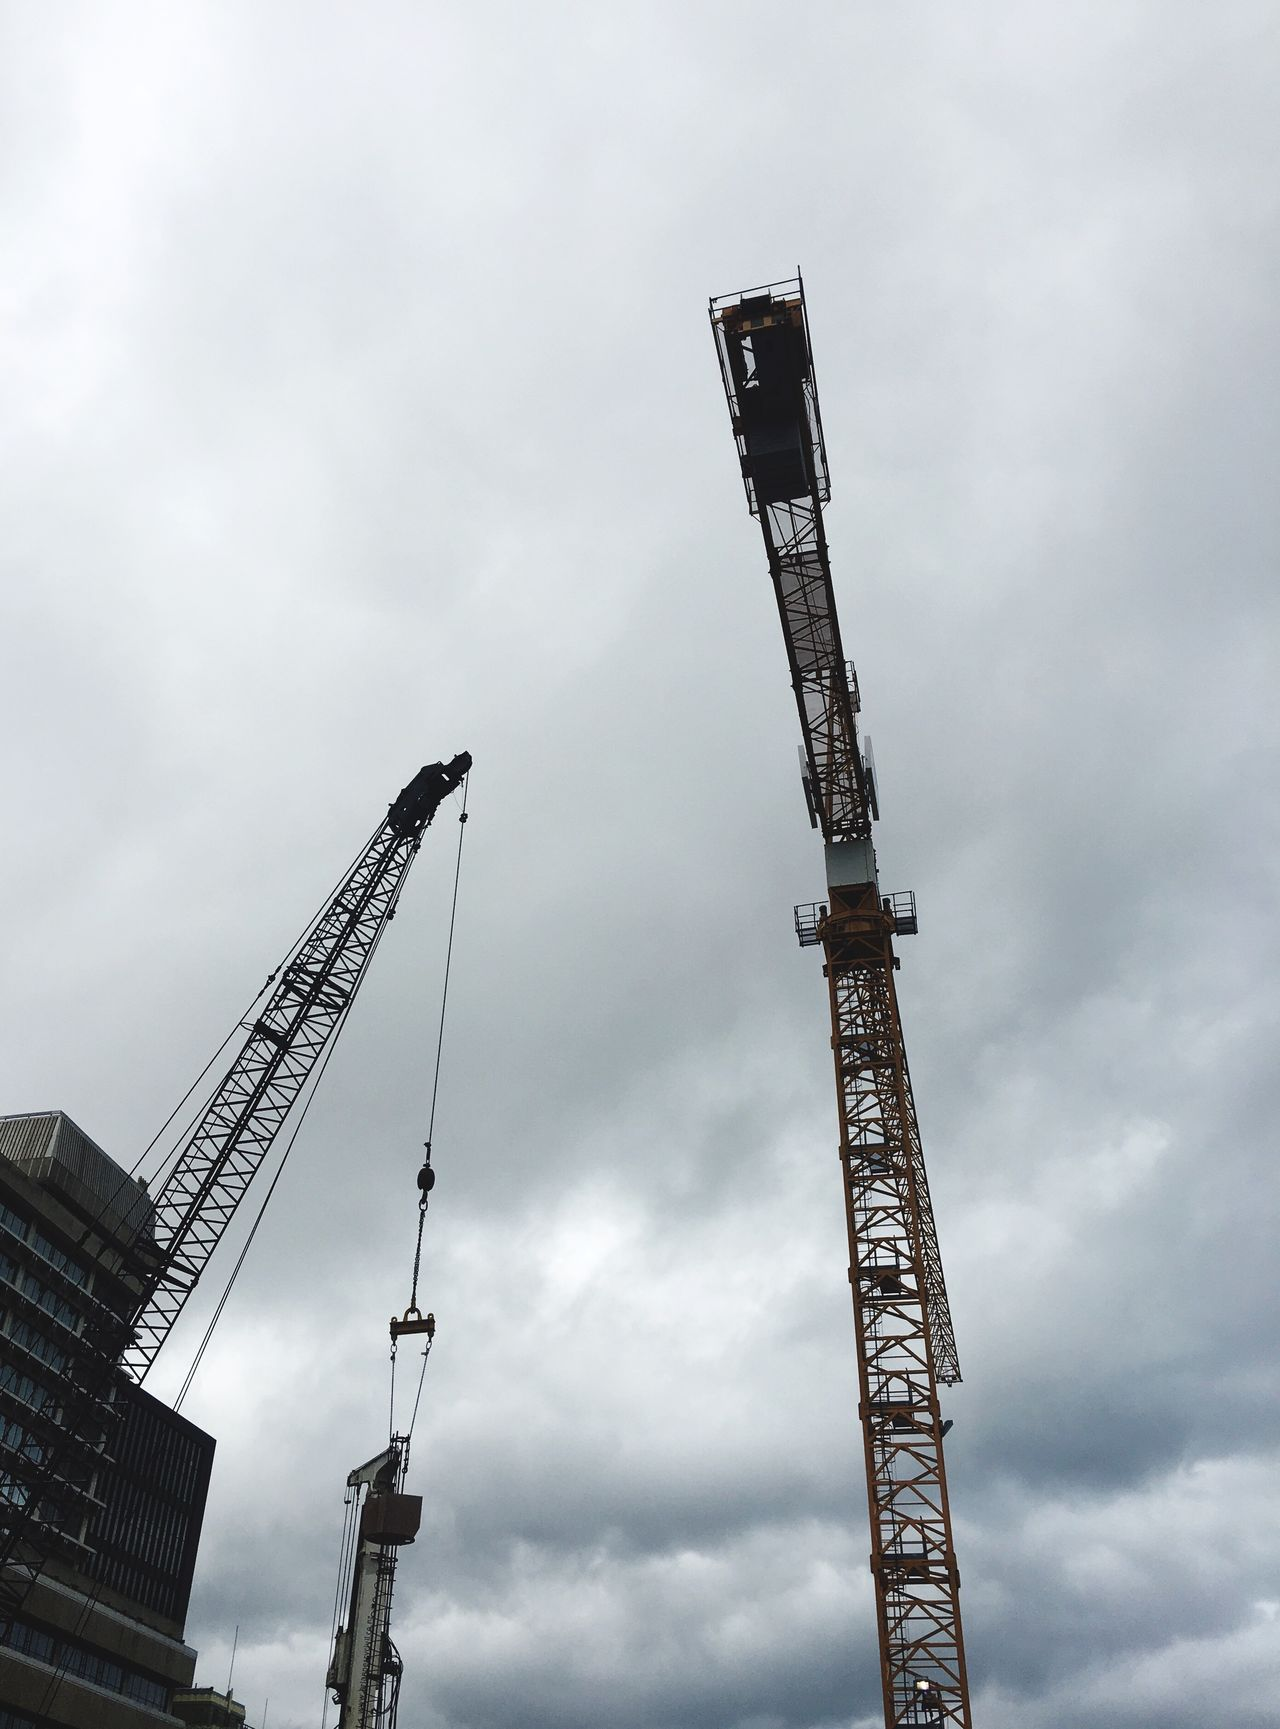 Cranes in the city Sky Low Angle View Development Construction Cranes Crane - Construction Machinery Cranespotting Cranes And Construction Tall - High Tall Cranes Overcast Overcast Skies City Construction